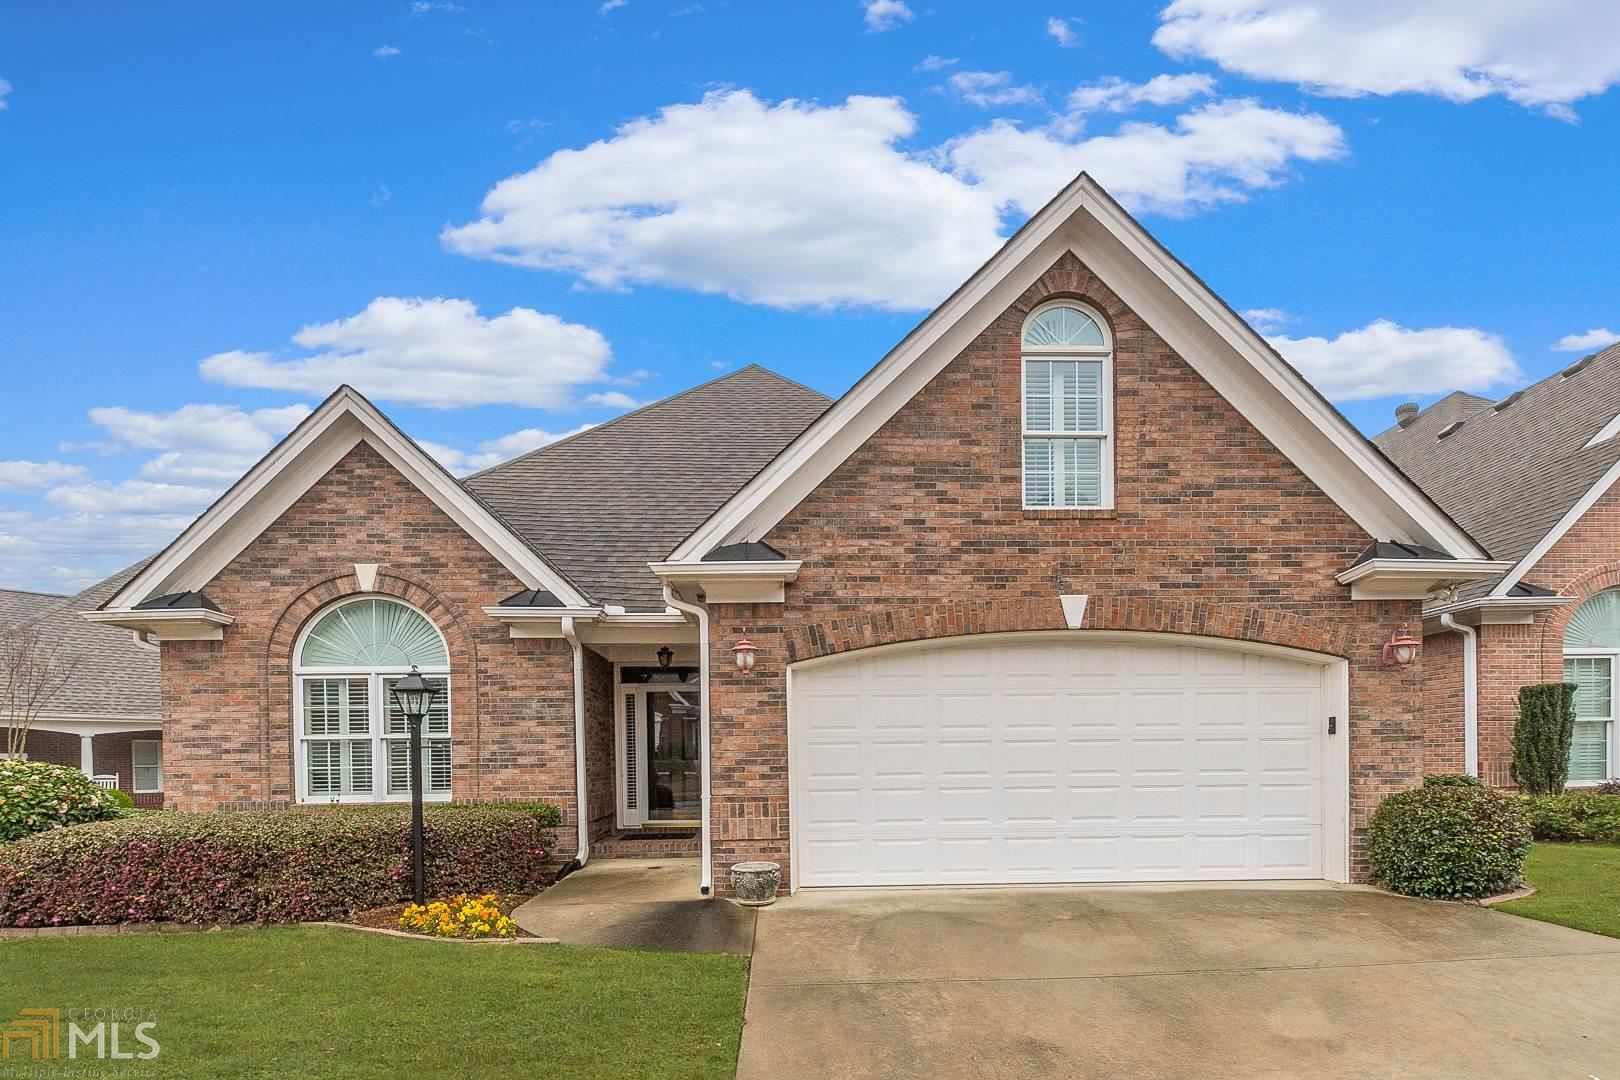 1850 Woodberry Run Dr, Snellville, GA 30078 - #: 8756652